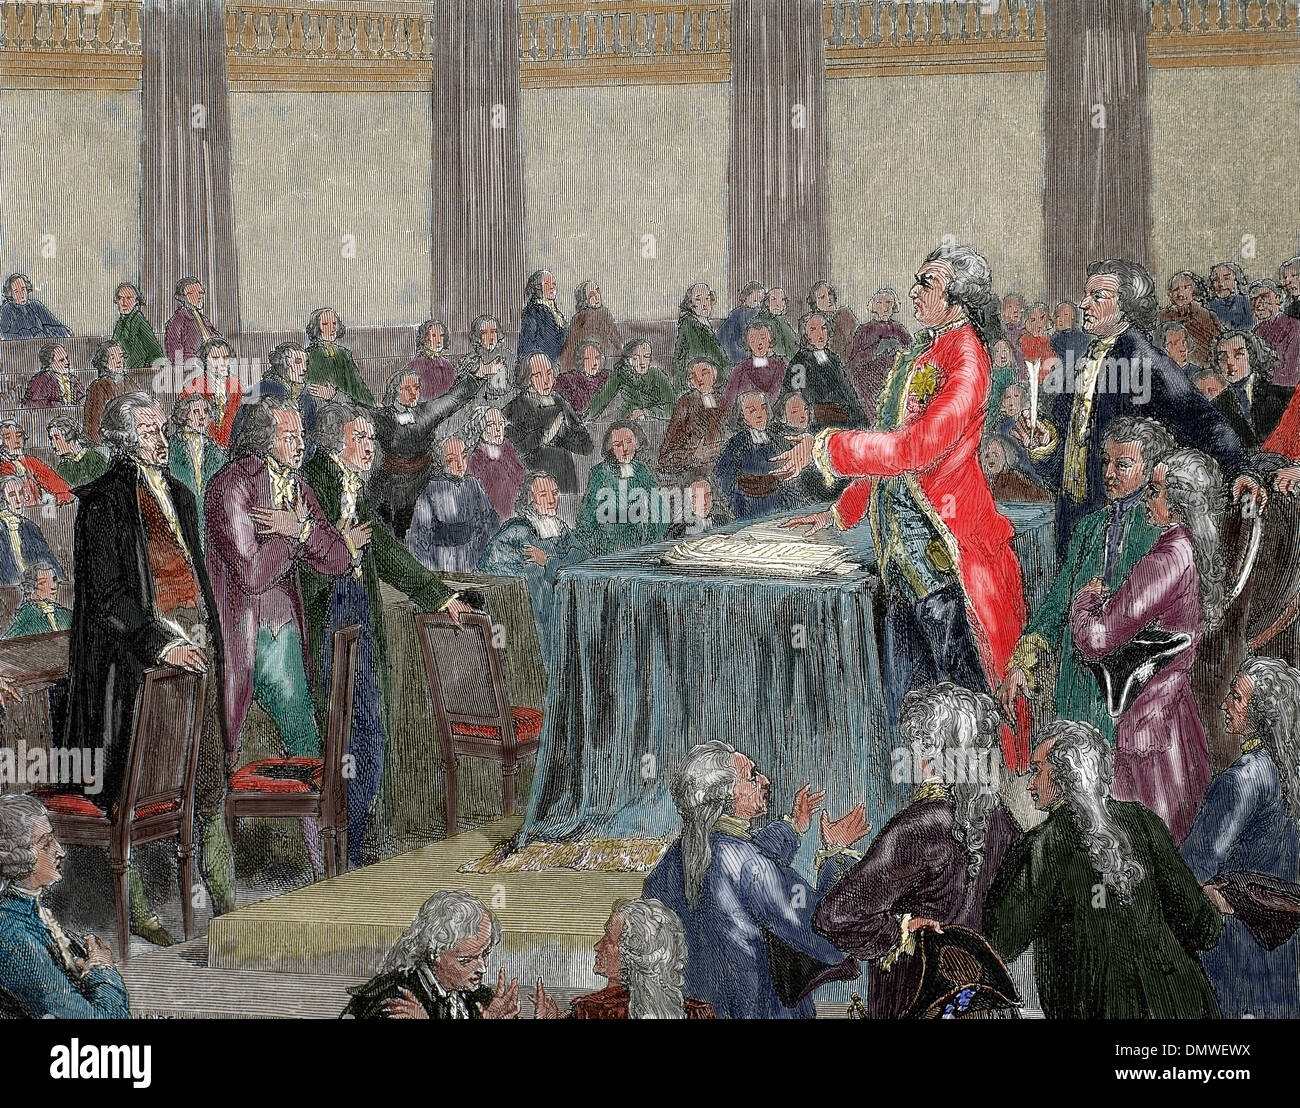 French Revolution 1787-1799. Louis XVI was forced to adopt the Constitution of 1791 by the National Assembly. Engraving. - Stock Image